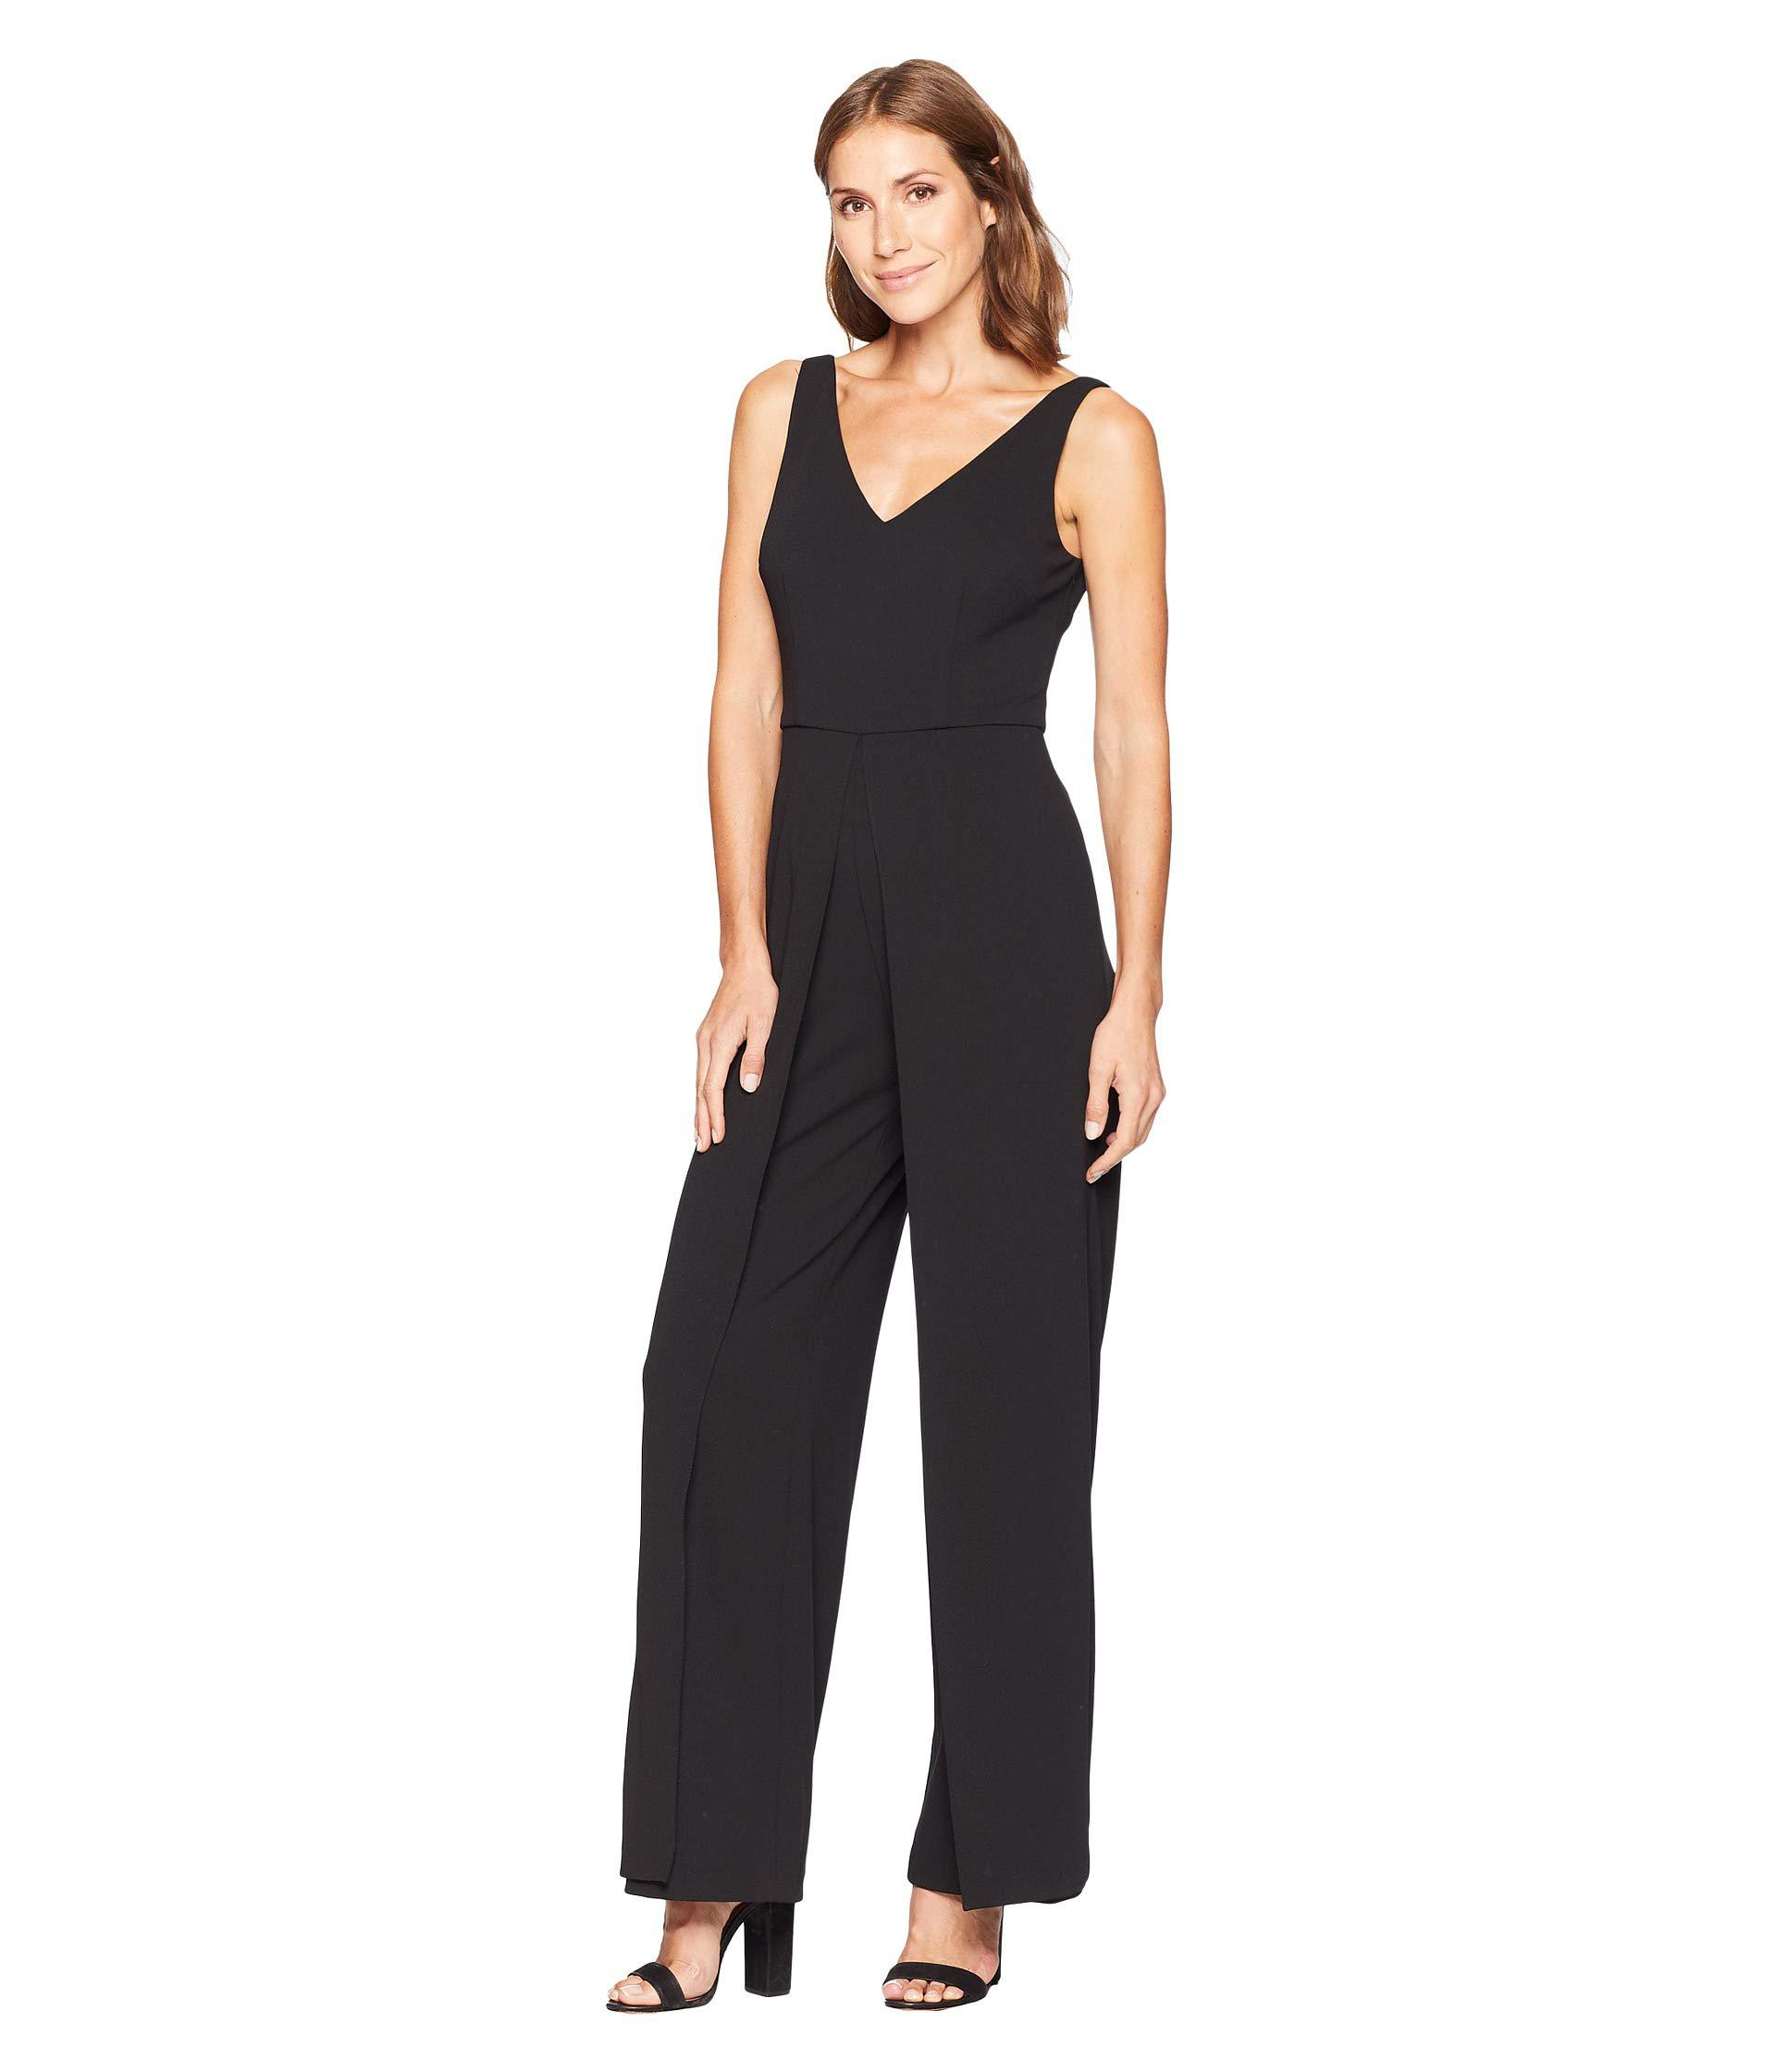 8782074f7588 Lyst - Adrianna Papell Knit Crepe V-neck Jumpsuit (black) Women s Jumpsuit    Rompers One Piece in Black